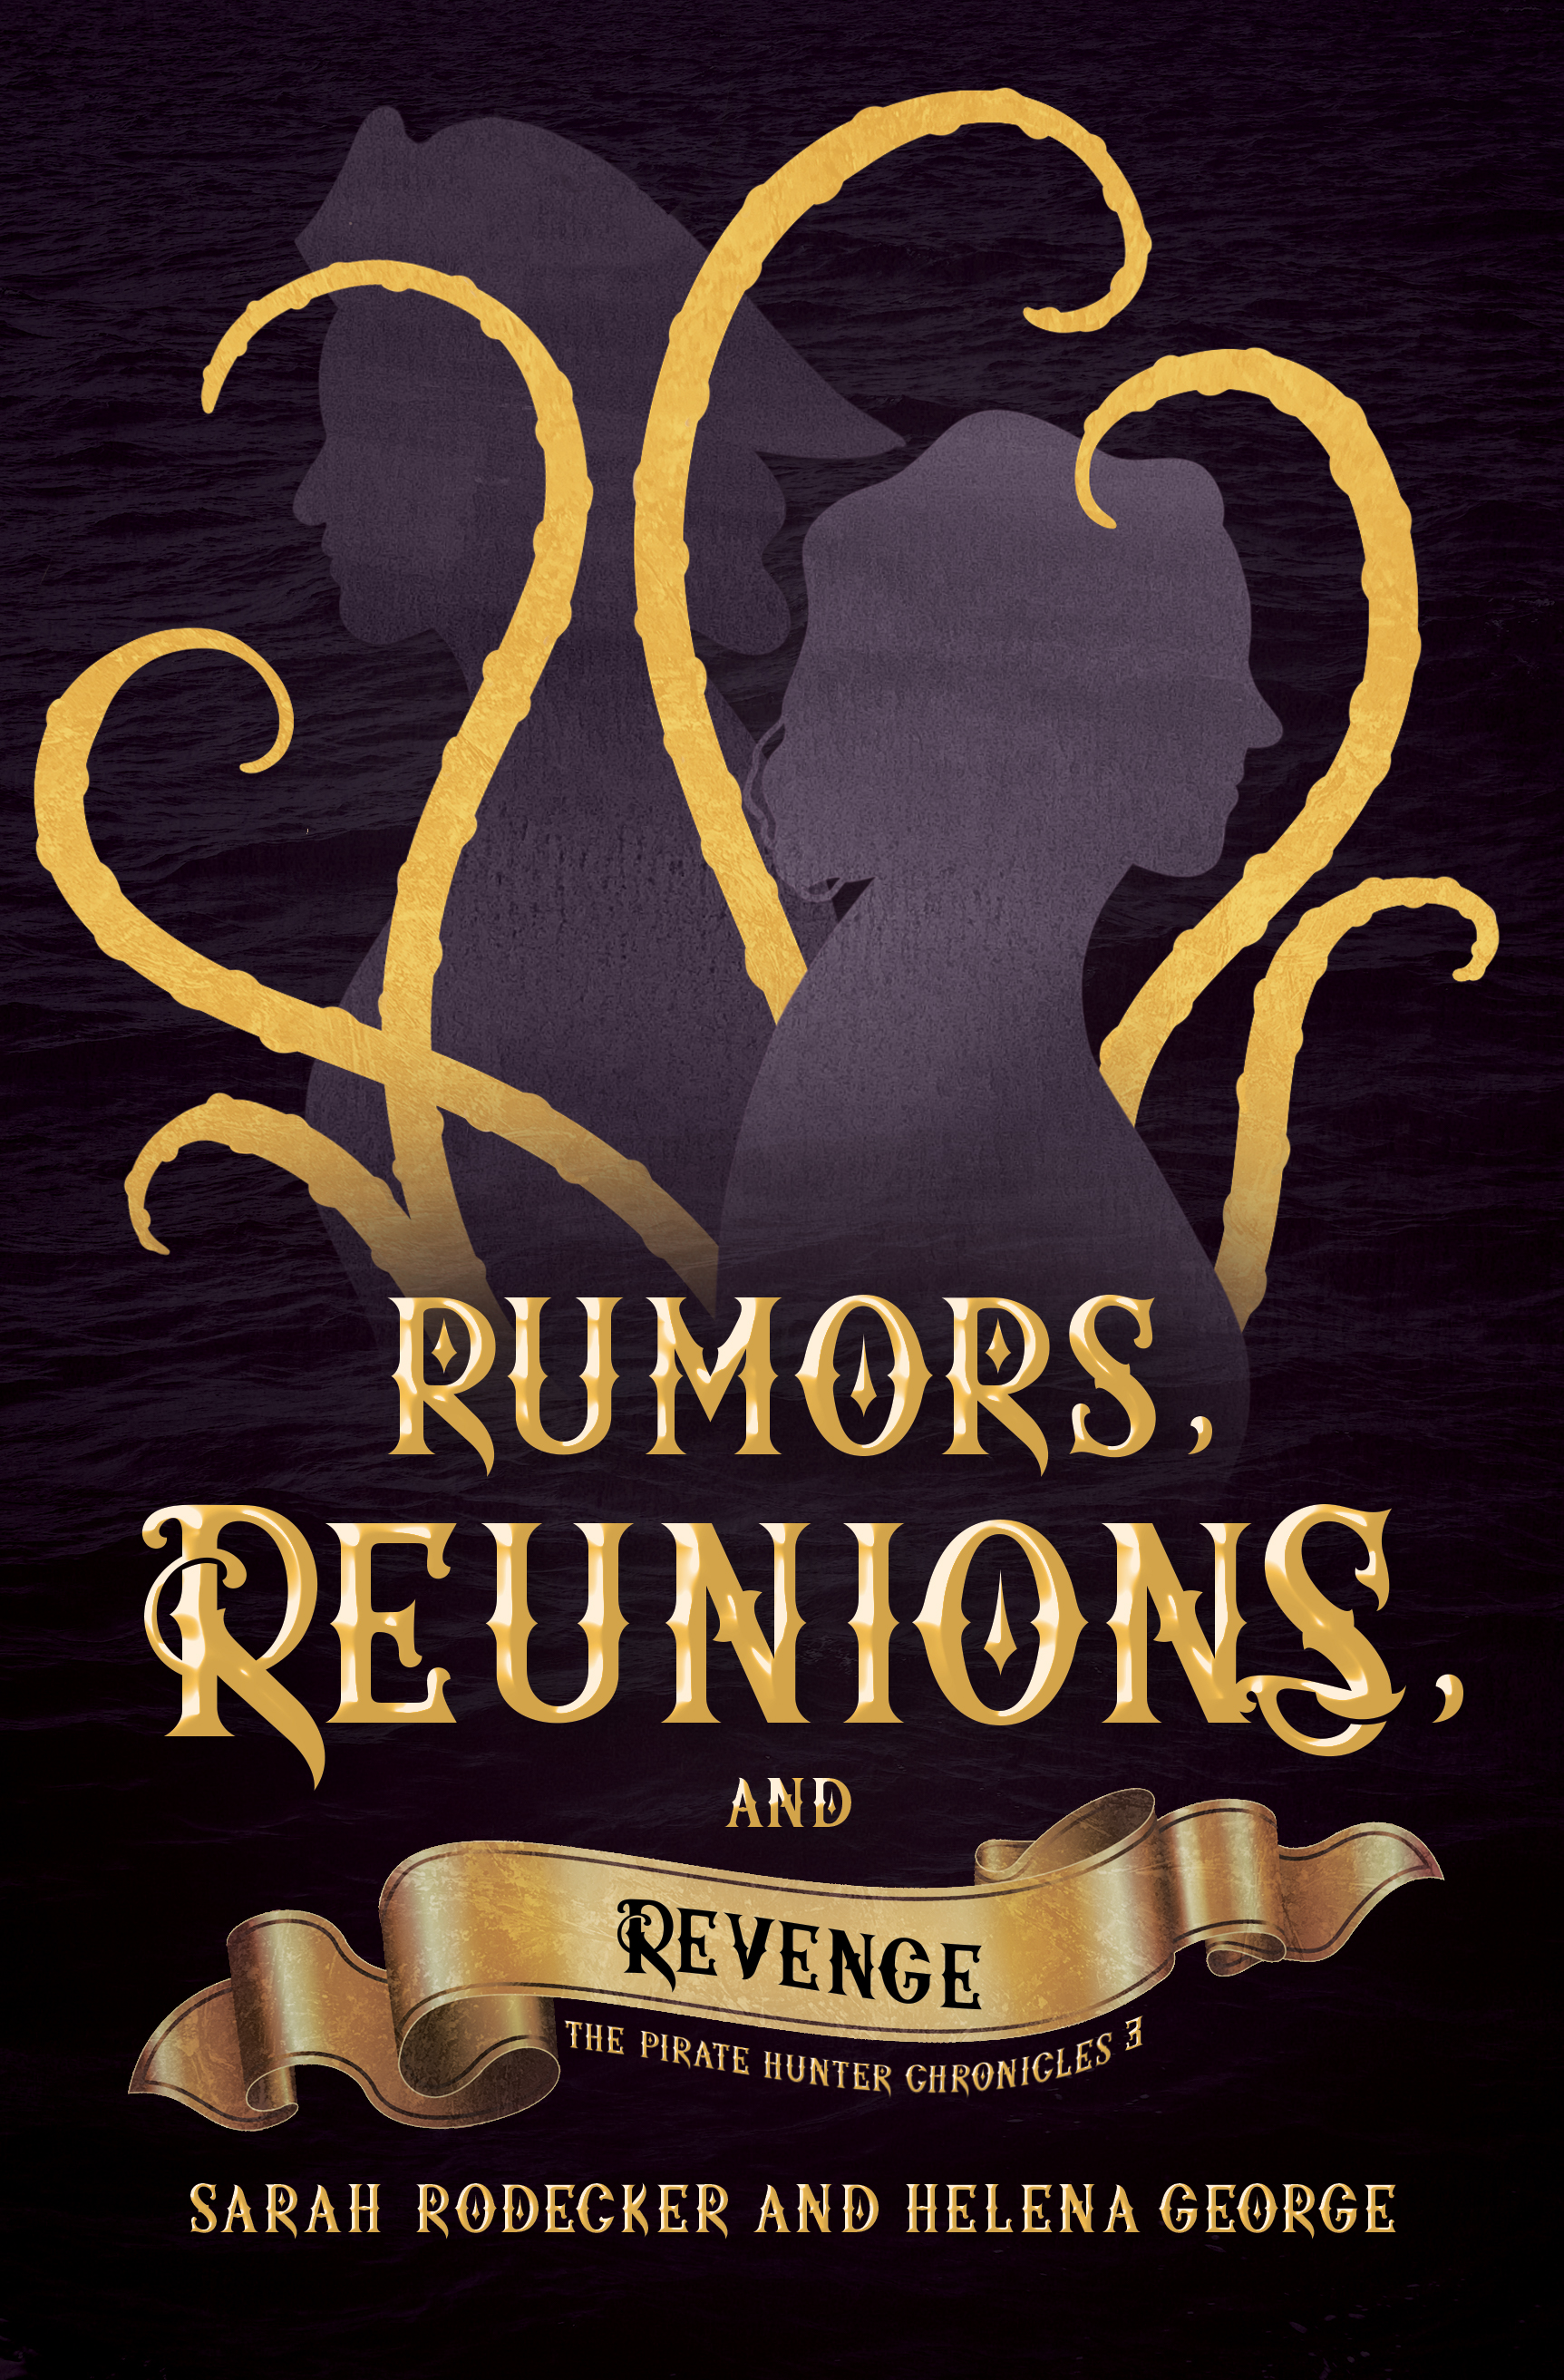 Rumors, Reunions, and Revenge (The Pirate Hunter Chronicles #3) by Sarah Rodecker, Helena George